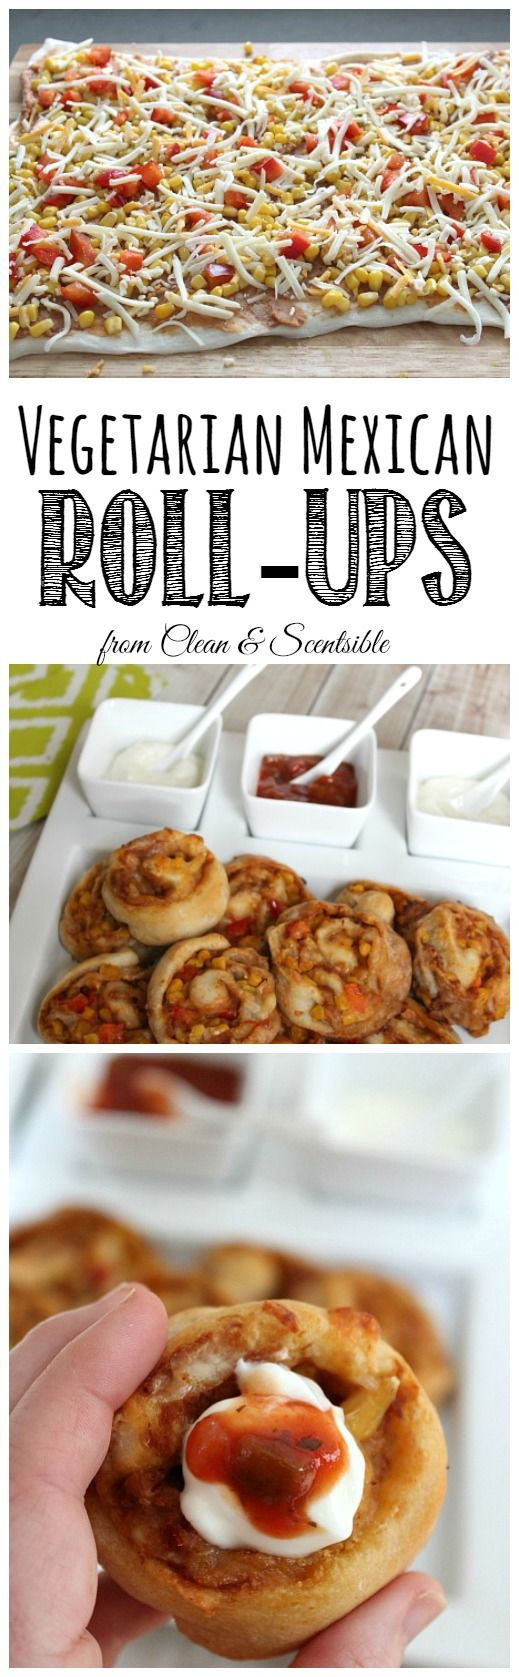 170 best food love vegetarian recipes images on pinterest these vegetarian mexican roll ups are done from start to finish in about 30 minutes forumfinder Image collections